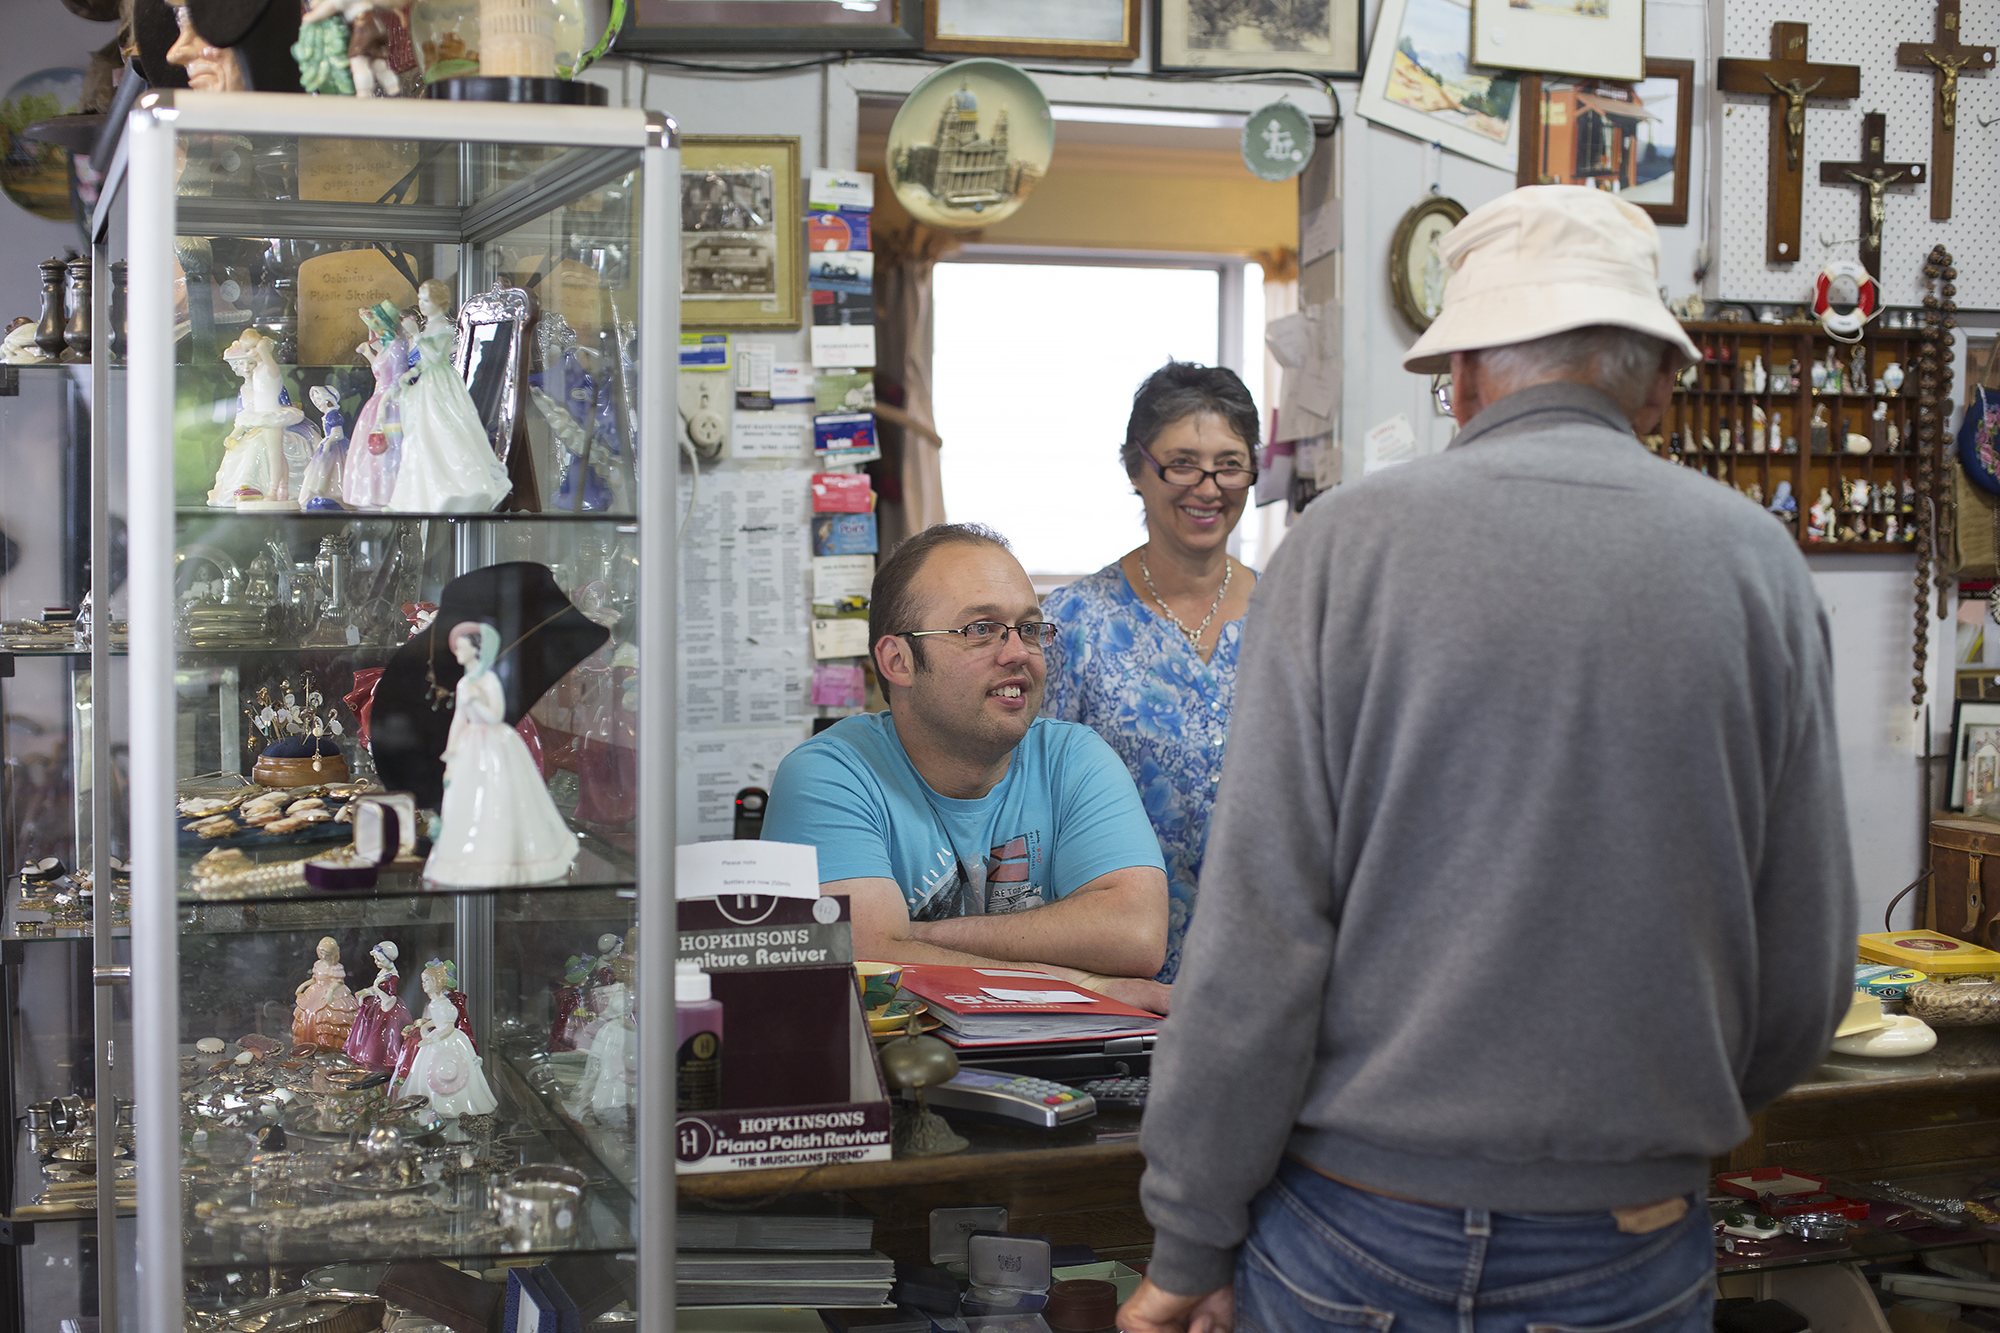 Logan and Maria chat with one of their regular visitors to the store.